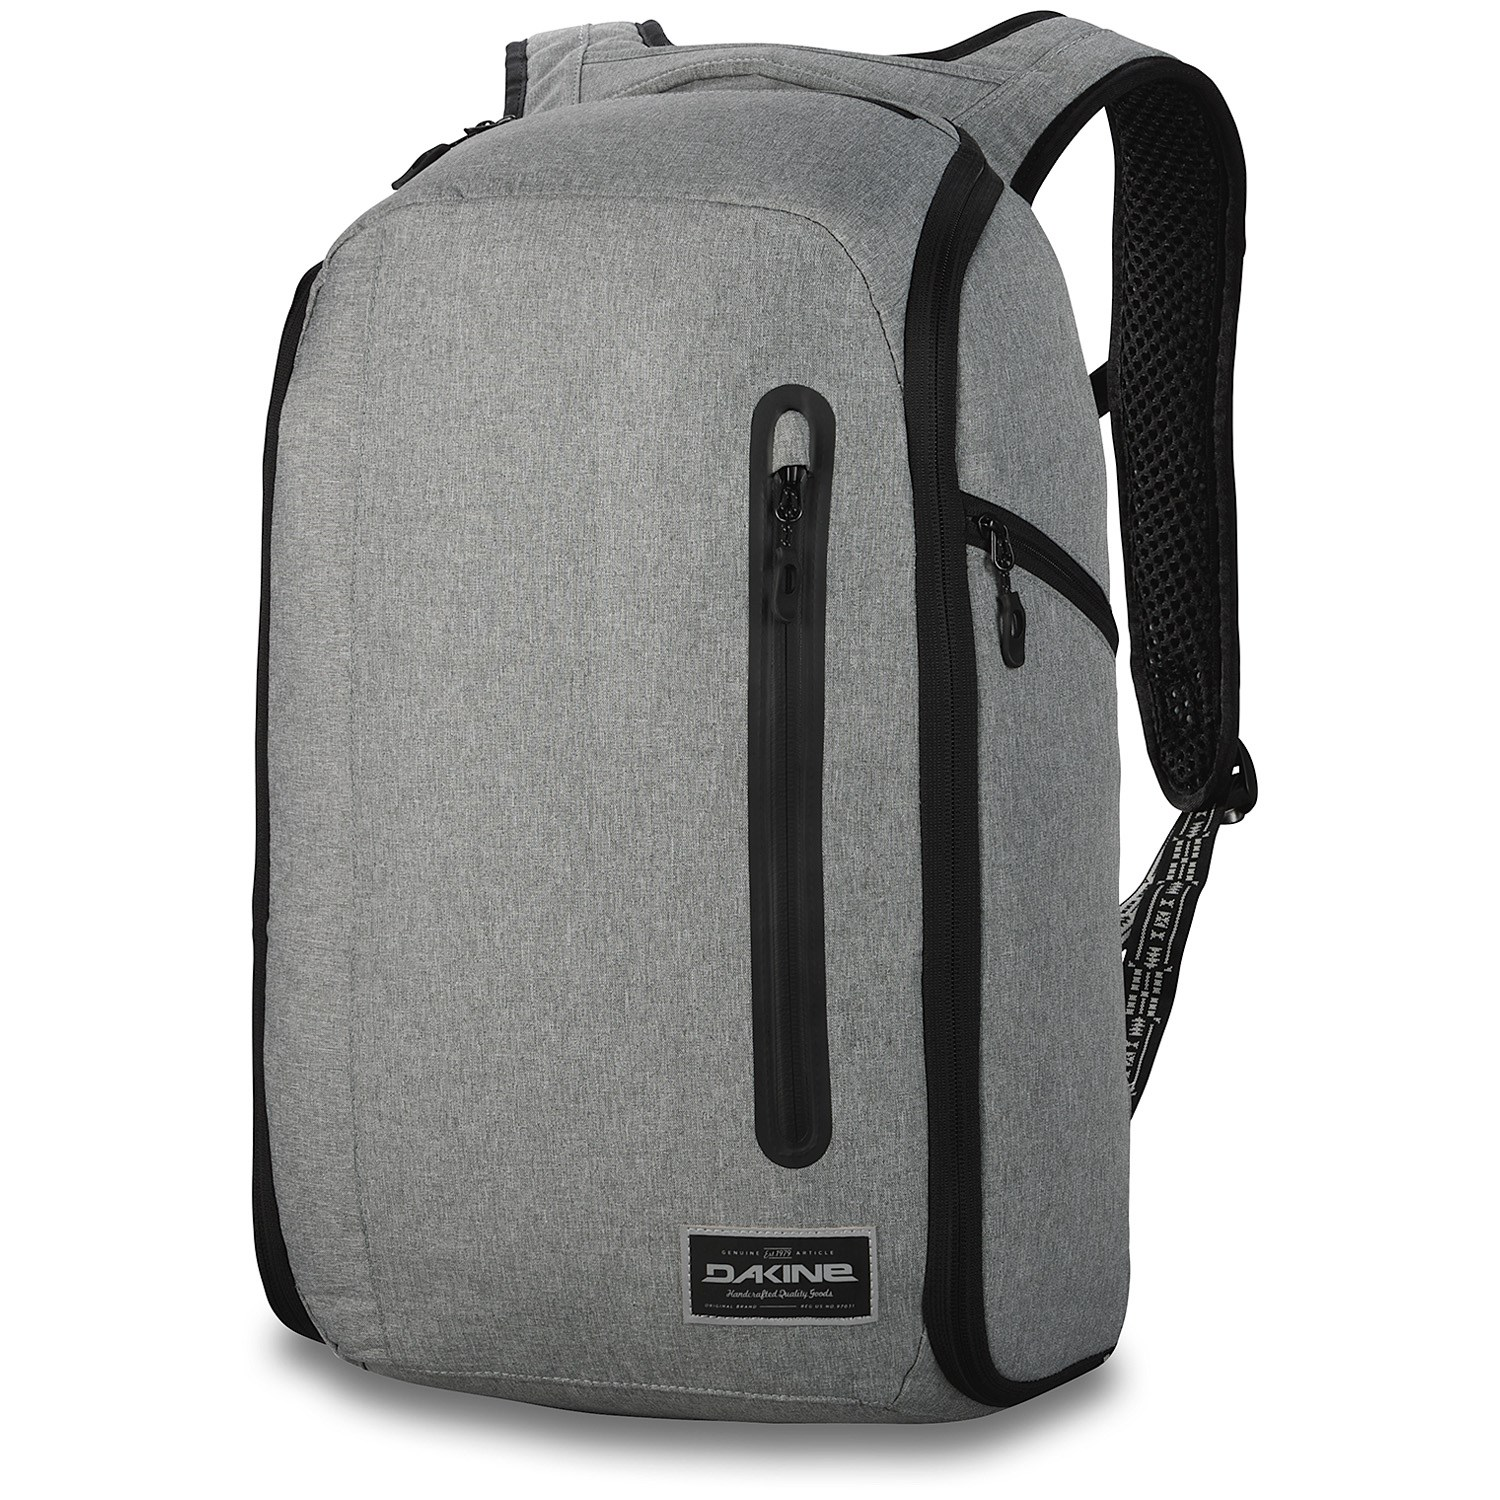 Dakine Backpacks For Sale - Crazy Backpacks